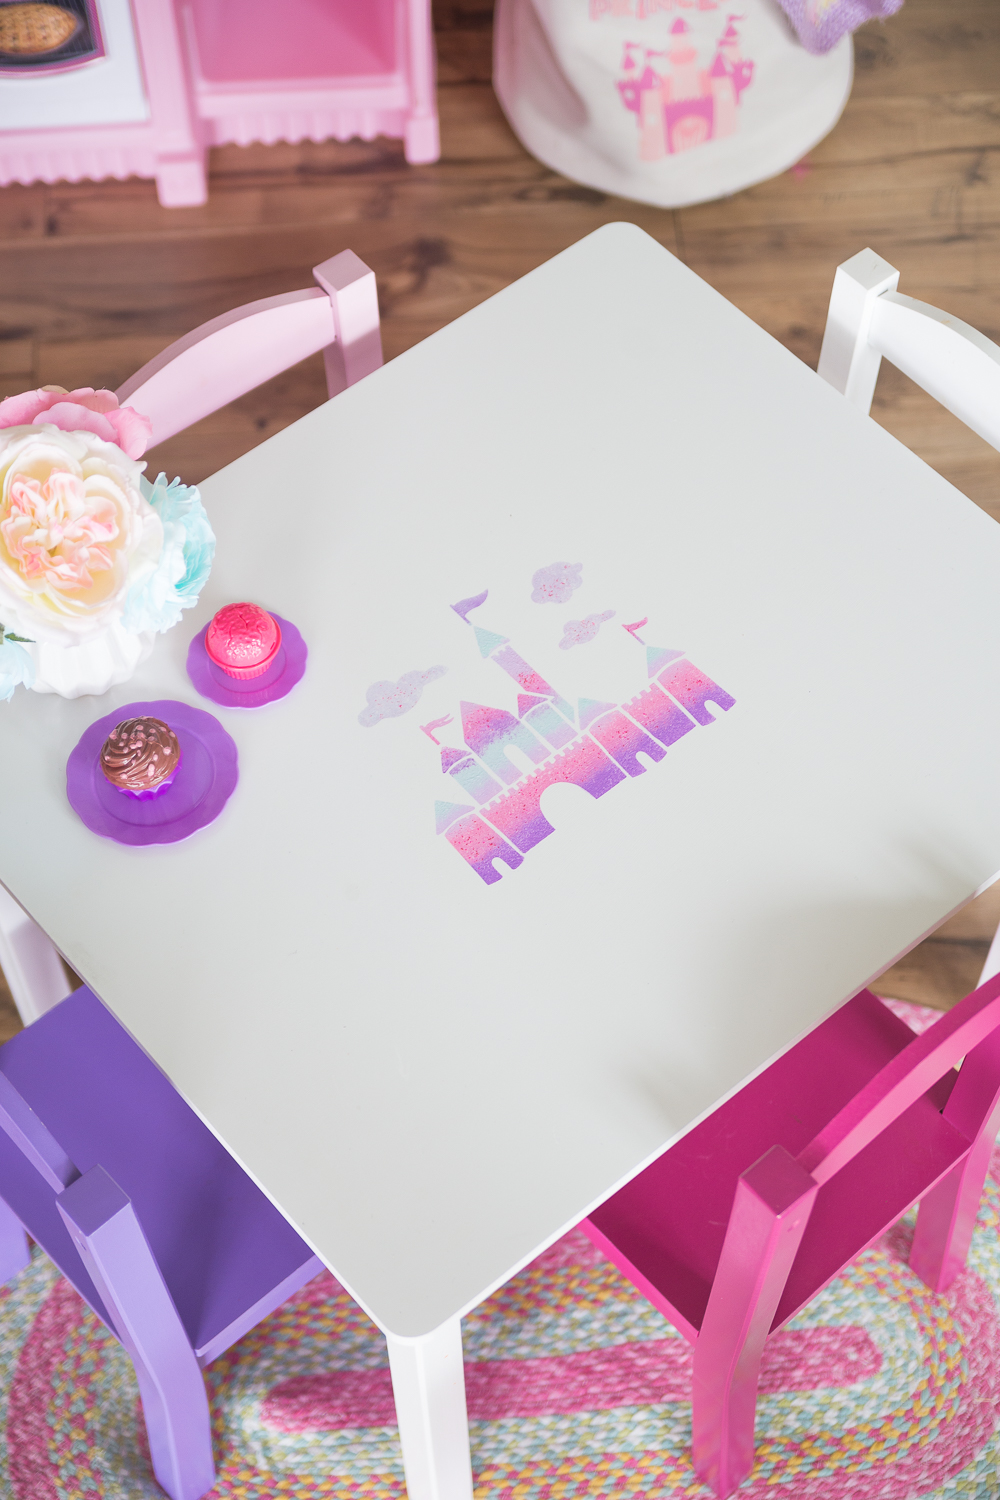 Princess Castle Toddler Desk: a fun and simple princess castle in shades of purples and pinks which is perfect for any little girls room.  The adhesive stencil makes this for a quick afternoon craft.